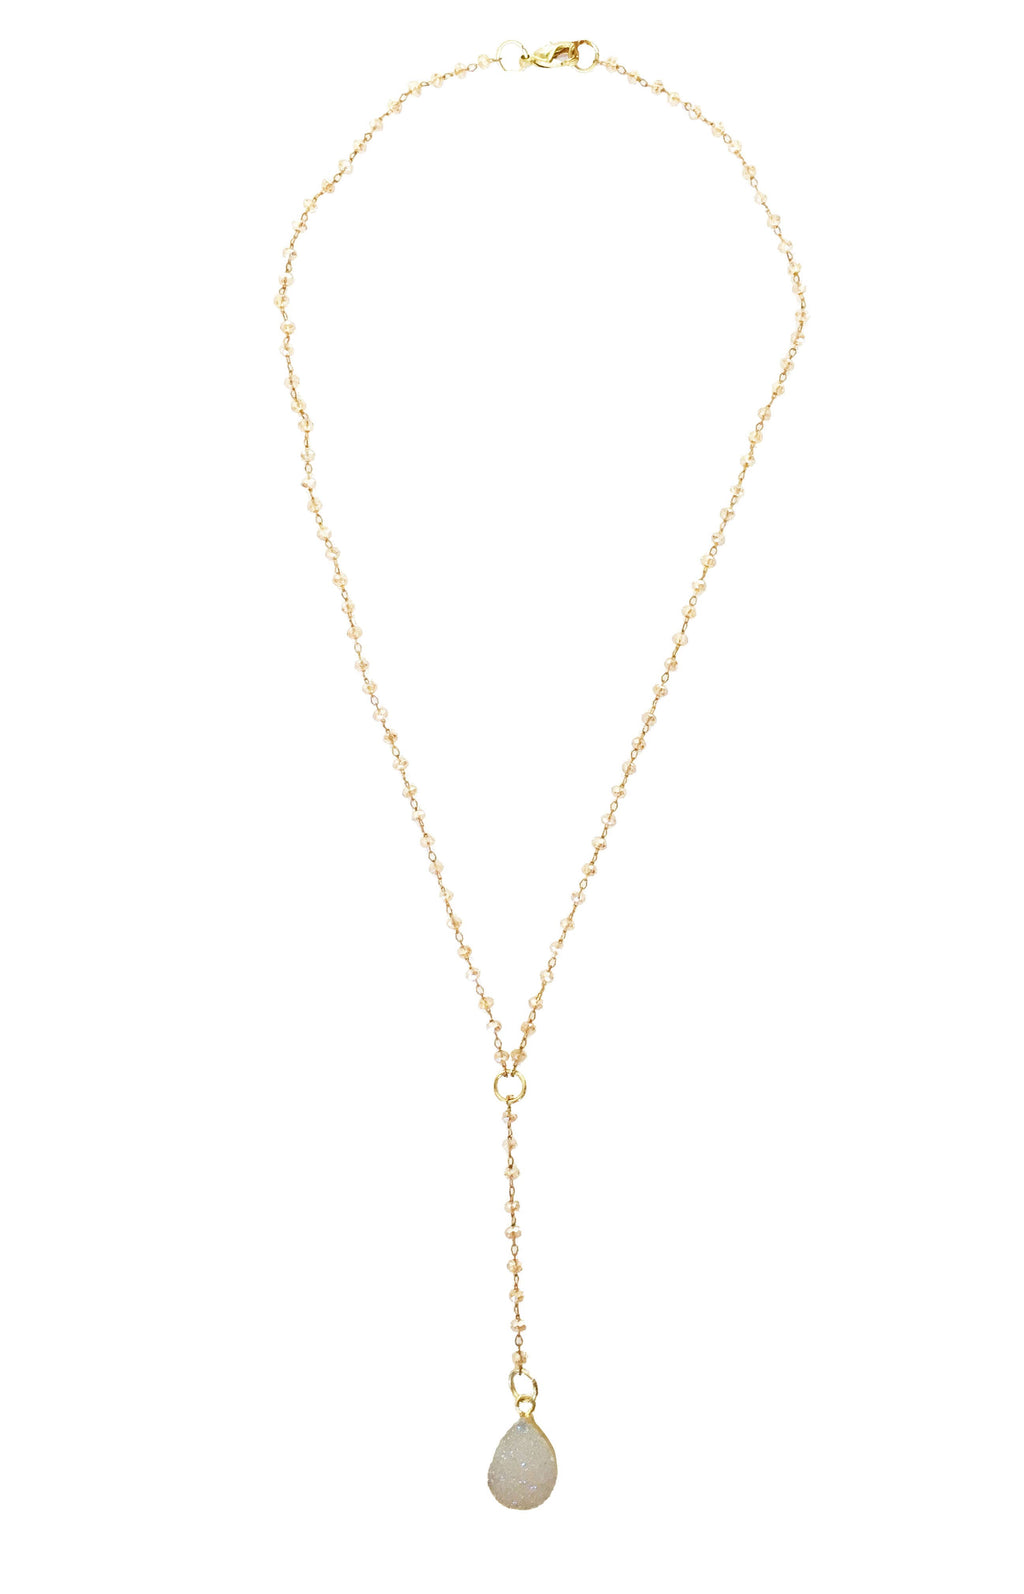 Champagne Crystal White Druzy Lariat Necklace